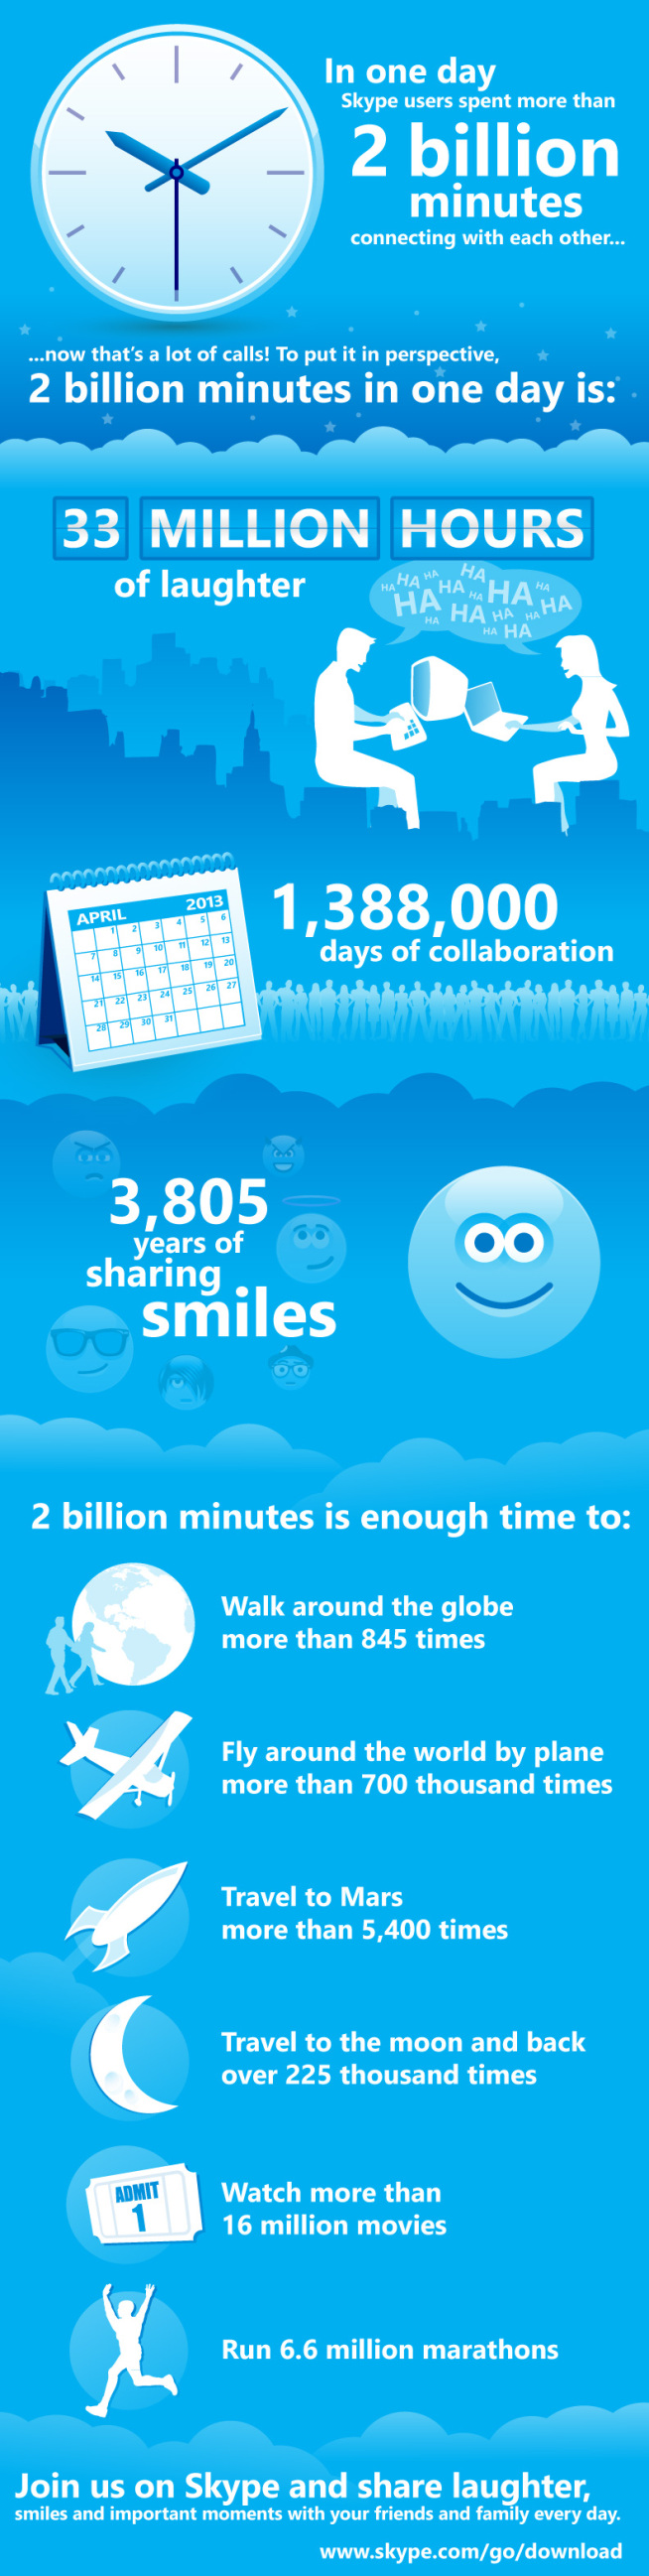 Skype users hit milestone 2 billion minute per day